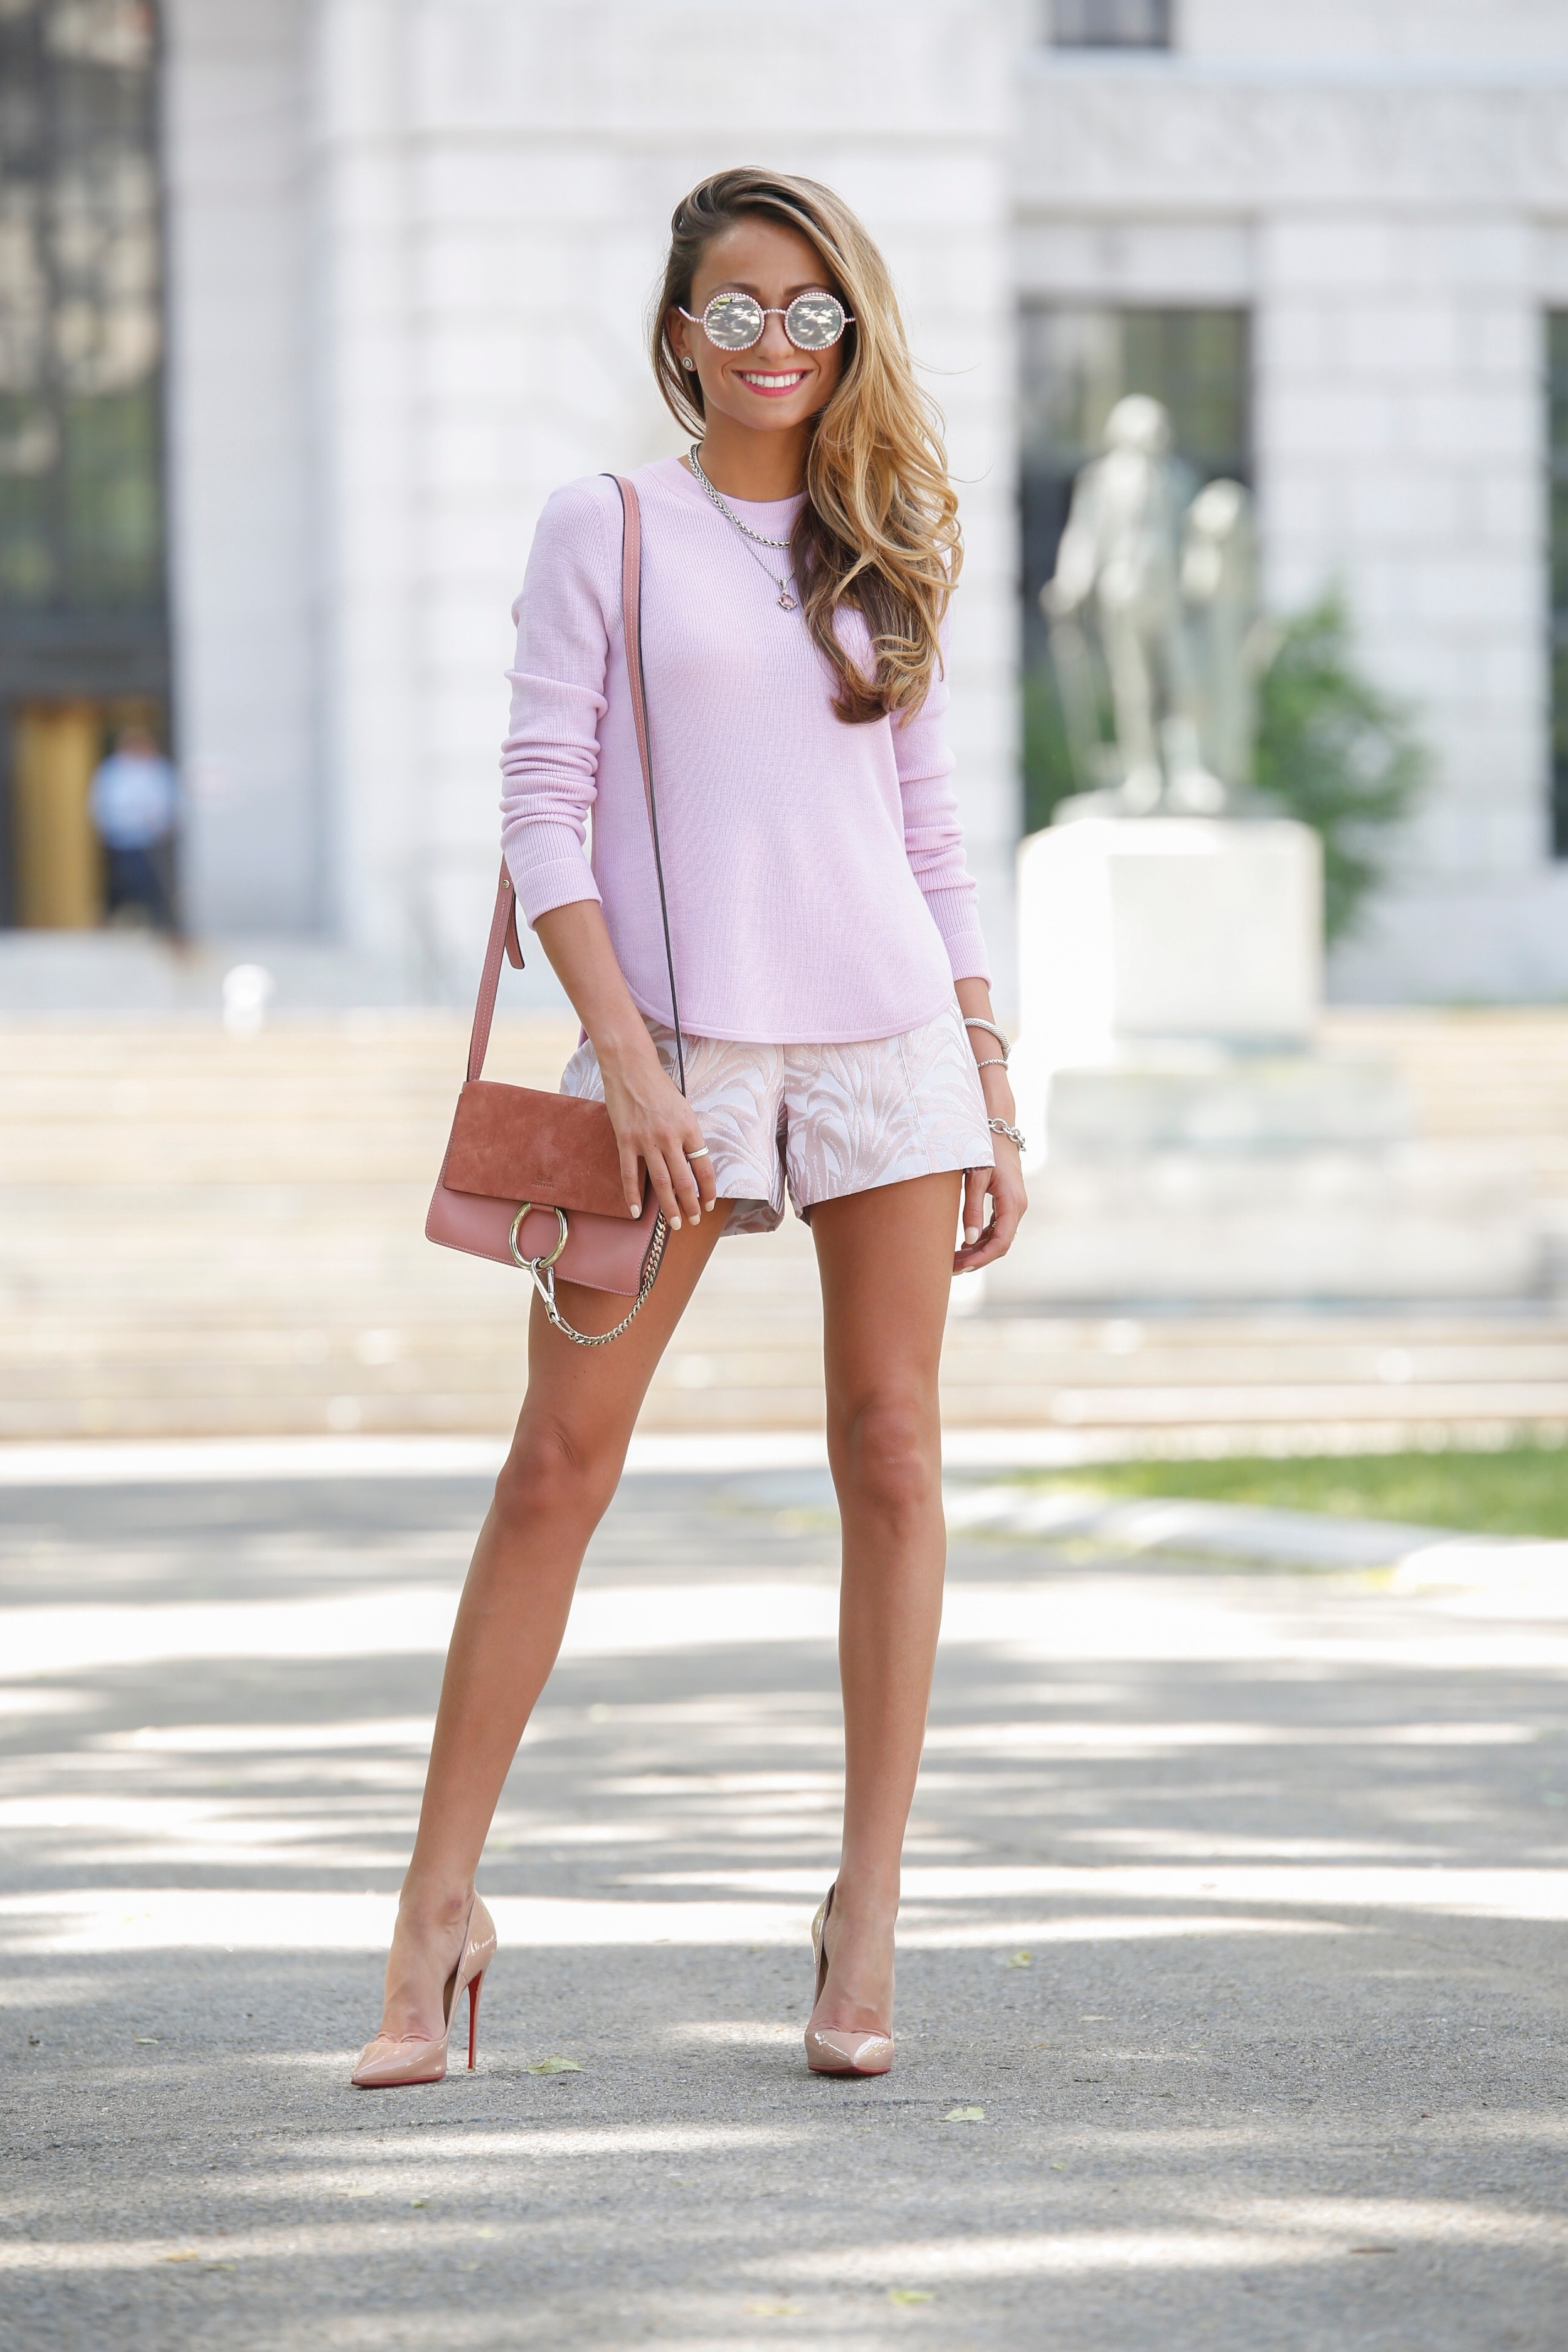 NYC fashion blogger Lauren Recchia seen in an A.L.C. sweater and pink jacquard shorts exclusive for intermix paired with the chloe faye bag and christian louboutin pumps